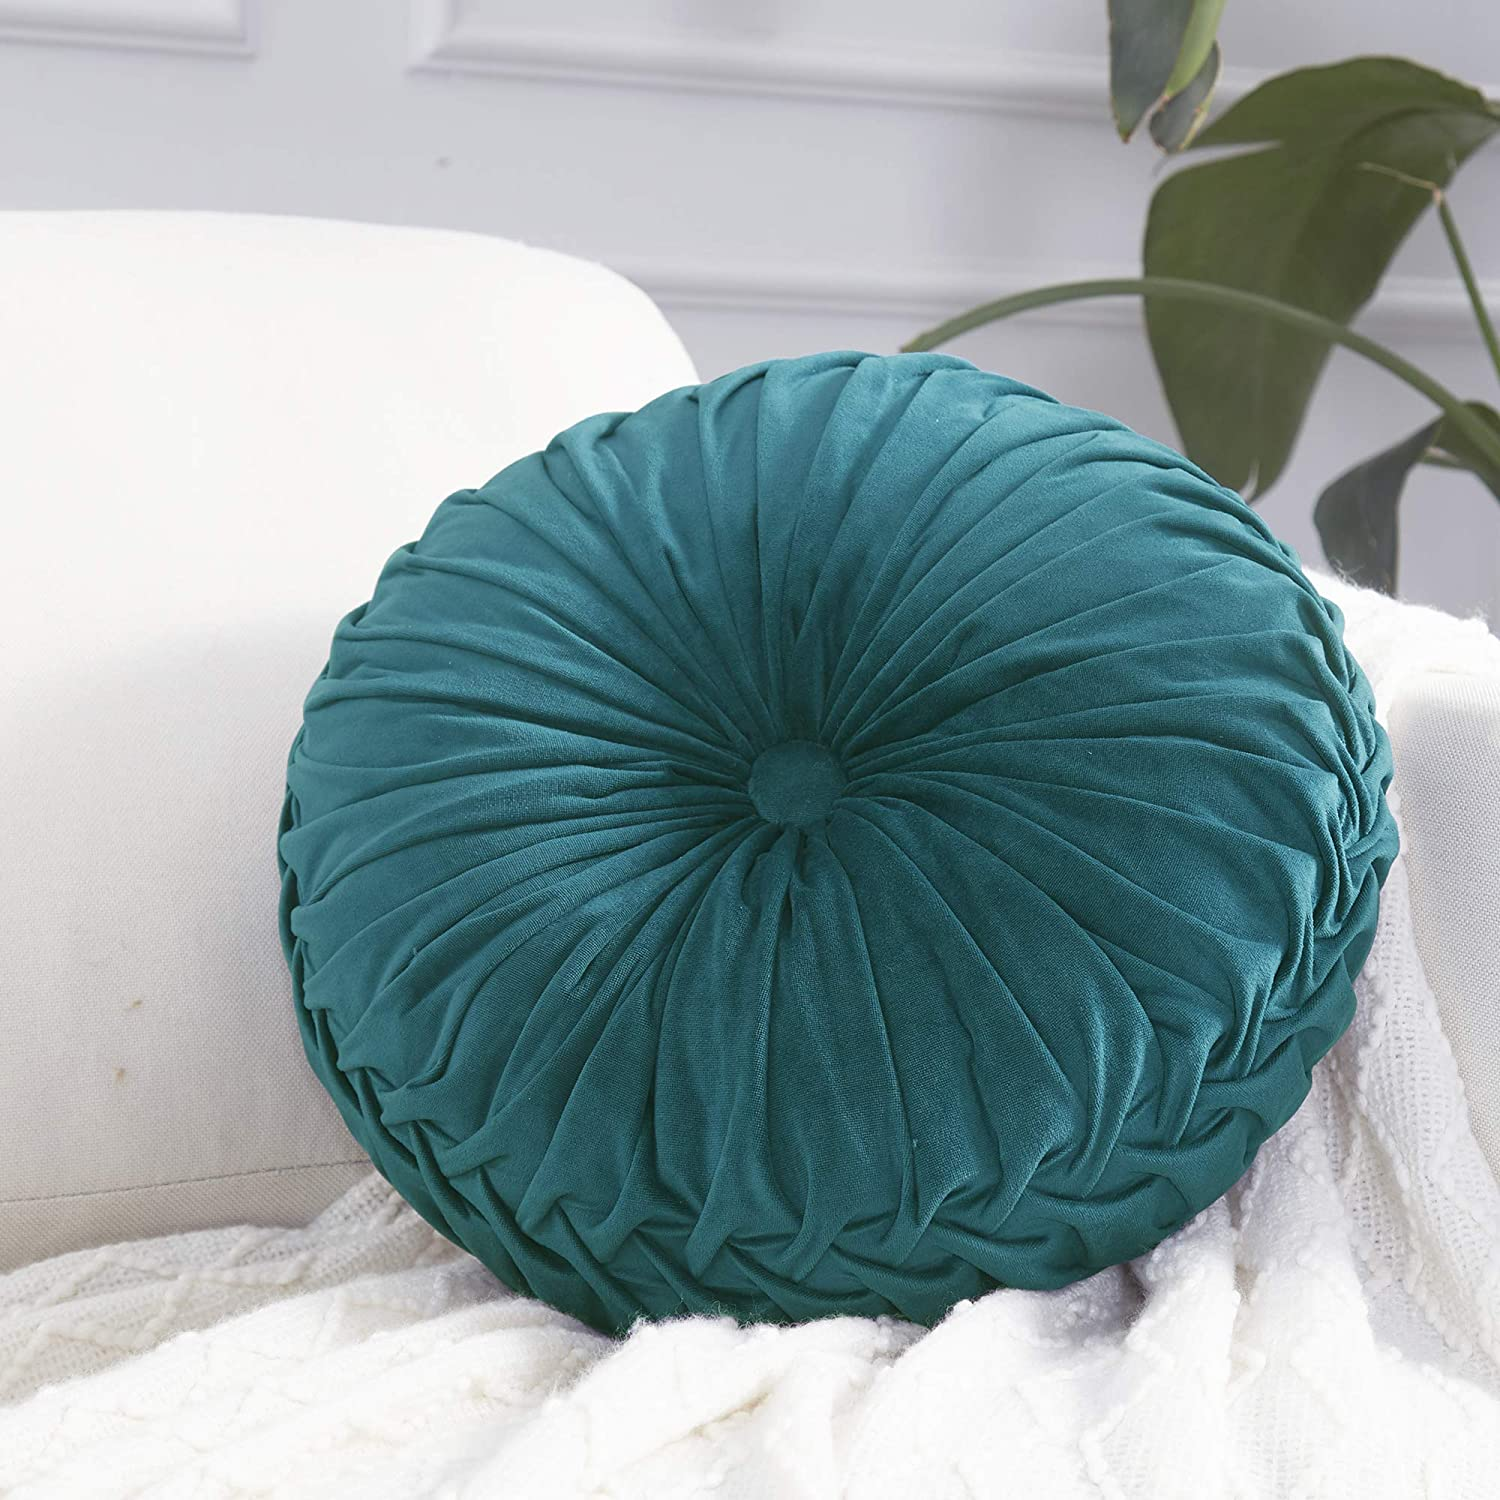 Astonishing Cassiel Home 14 5 Pintuck Round Throw Pillow Handcrafted Pumpkin Velvet Floor Pillow Gold Throw Pillows Cushion For Chair Couch Solid Dark Teal Gamerscity Chair Design For Home Gamerscityorg